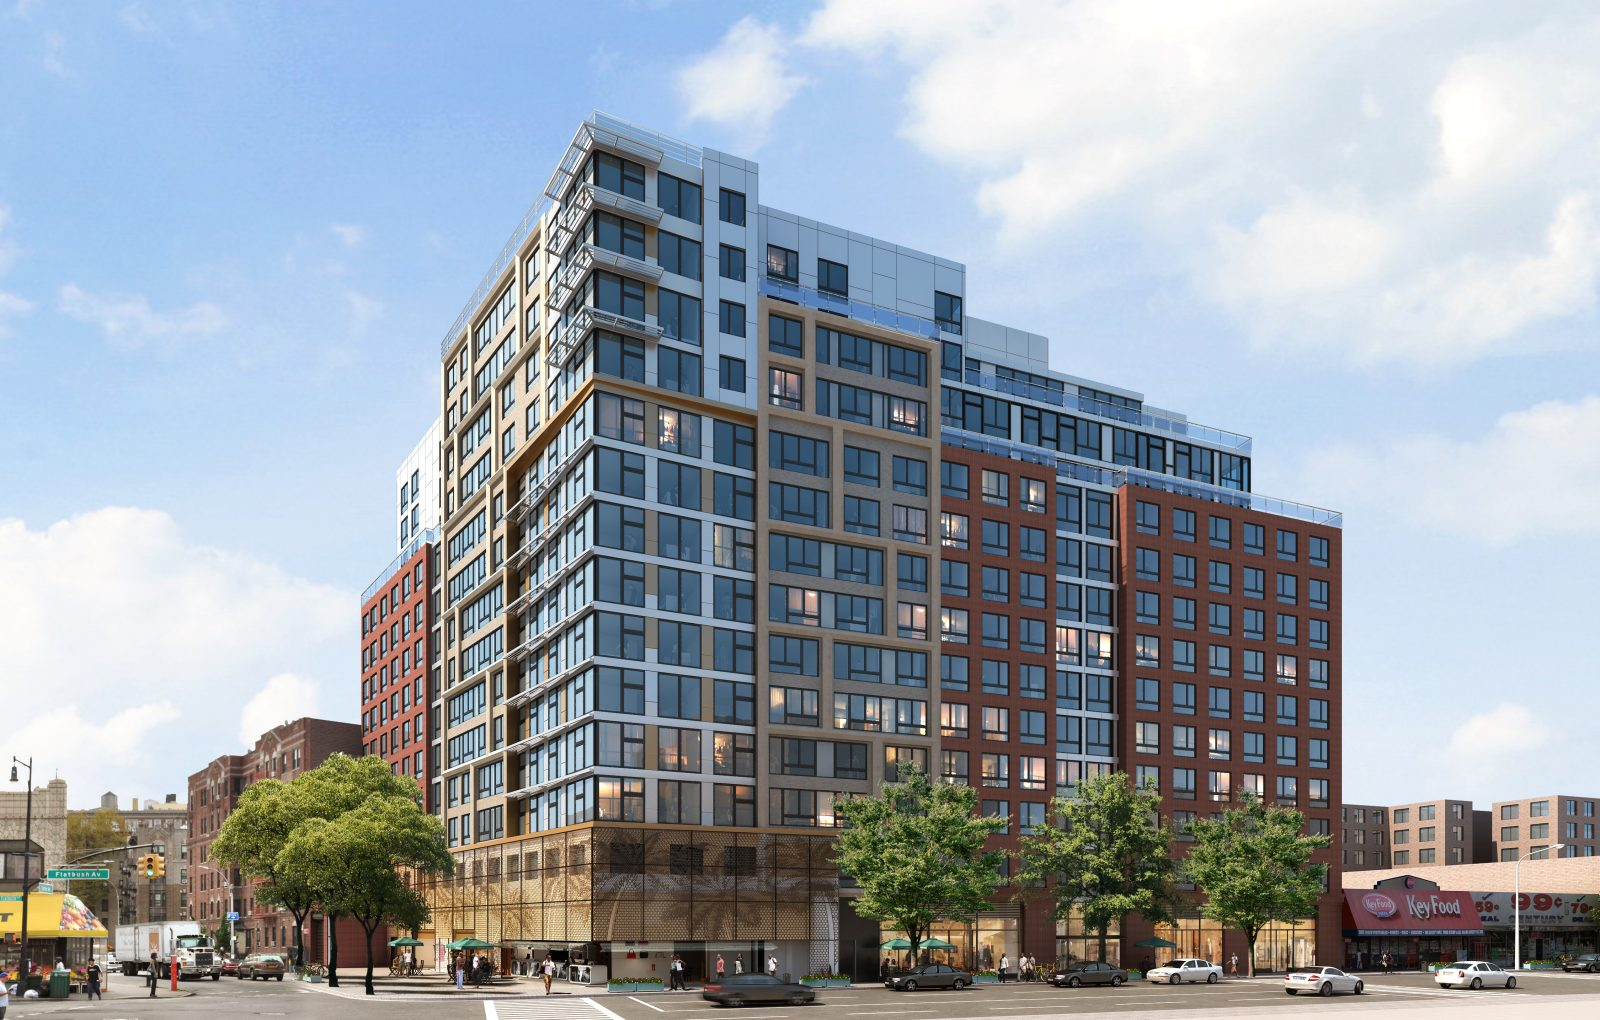 800 Flatbush Avenue, aka Caton Flats, designed by Magnusson Architecture and Planning